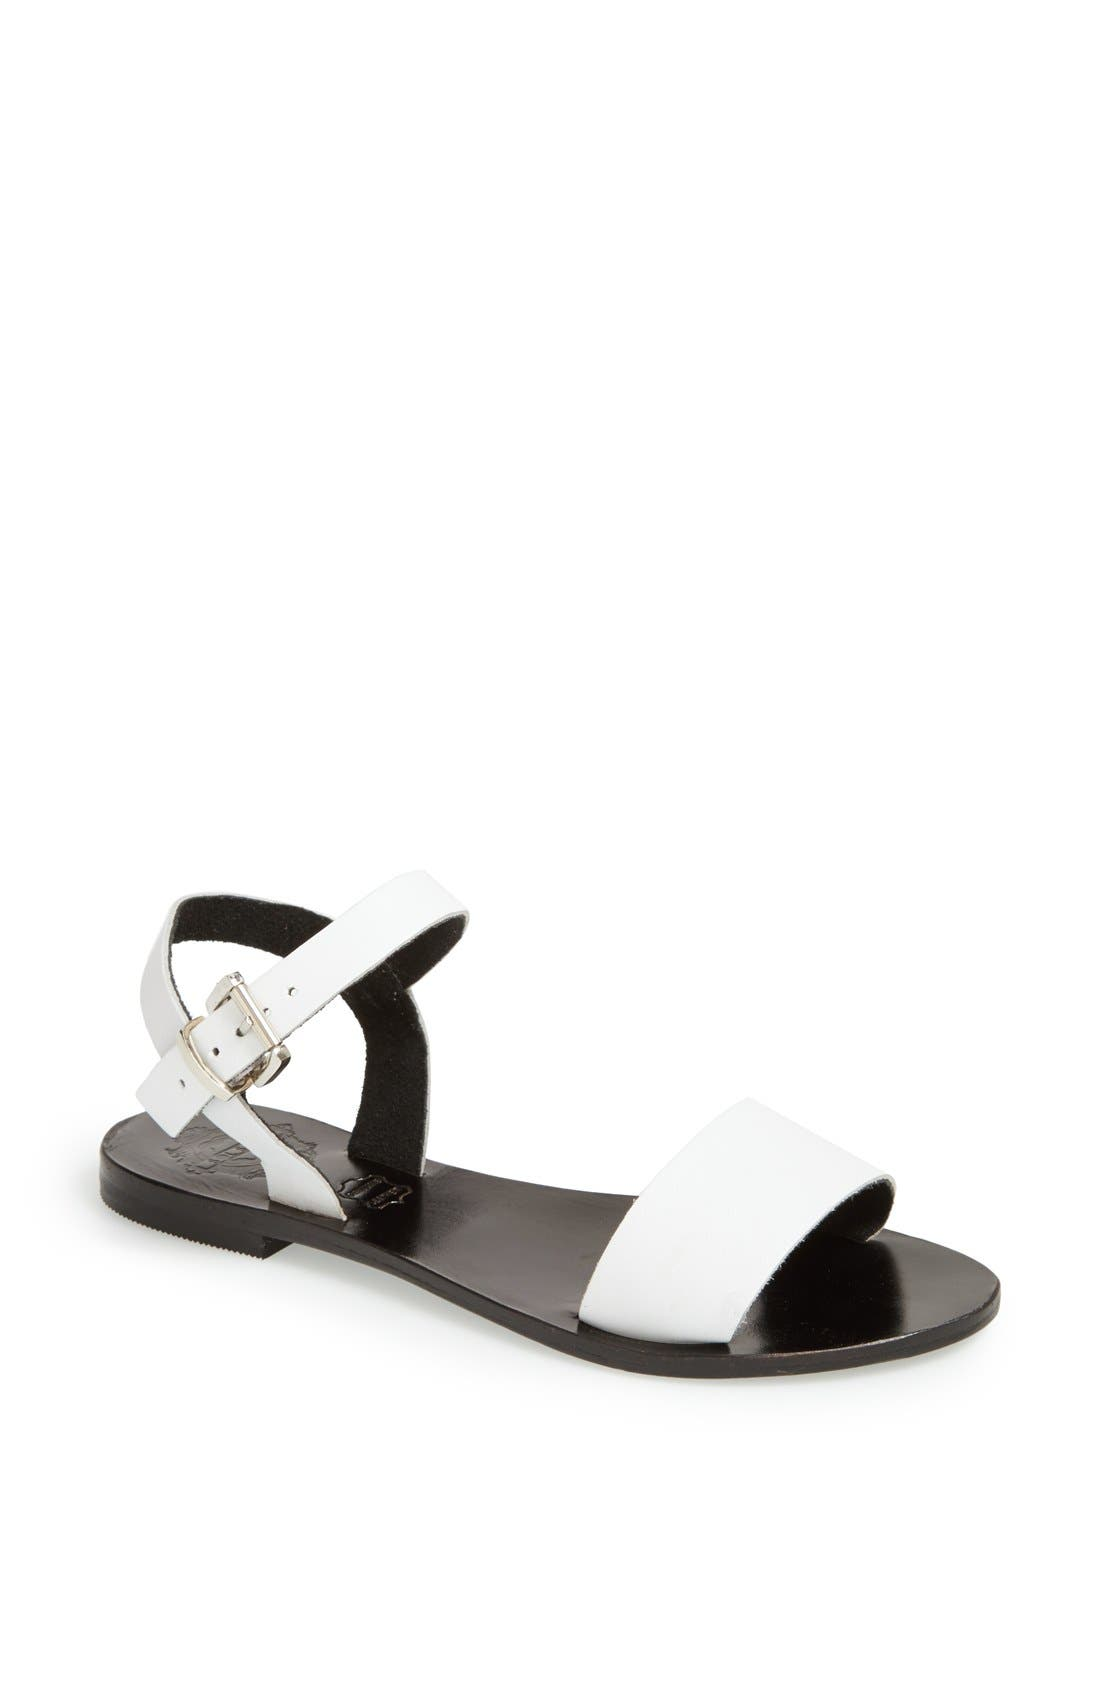 Alternate Image 1 Selected - Sol Sana 'Ara' Leather Sandal